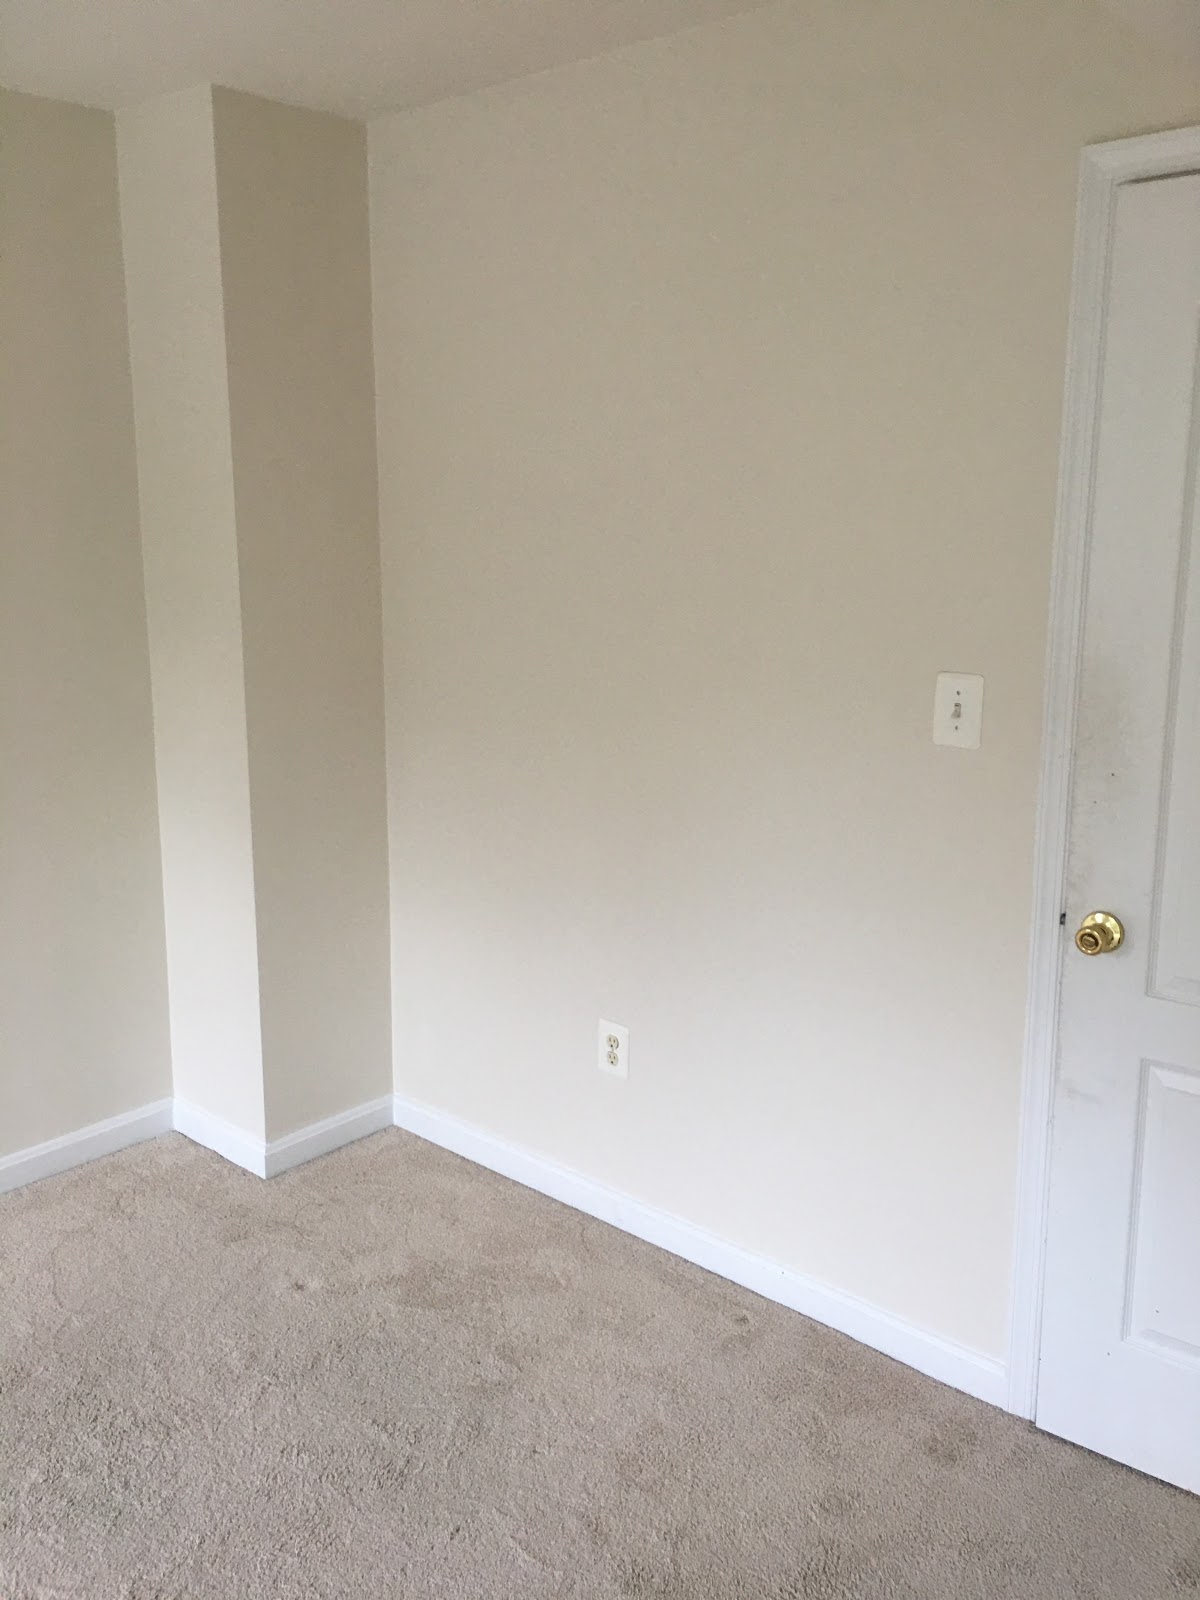 A Cream Painted Wall | Home Repair Maintenance in Fulton, MD